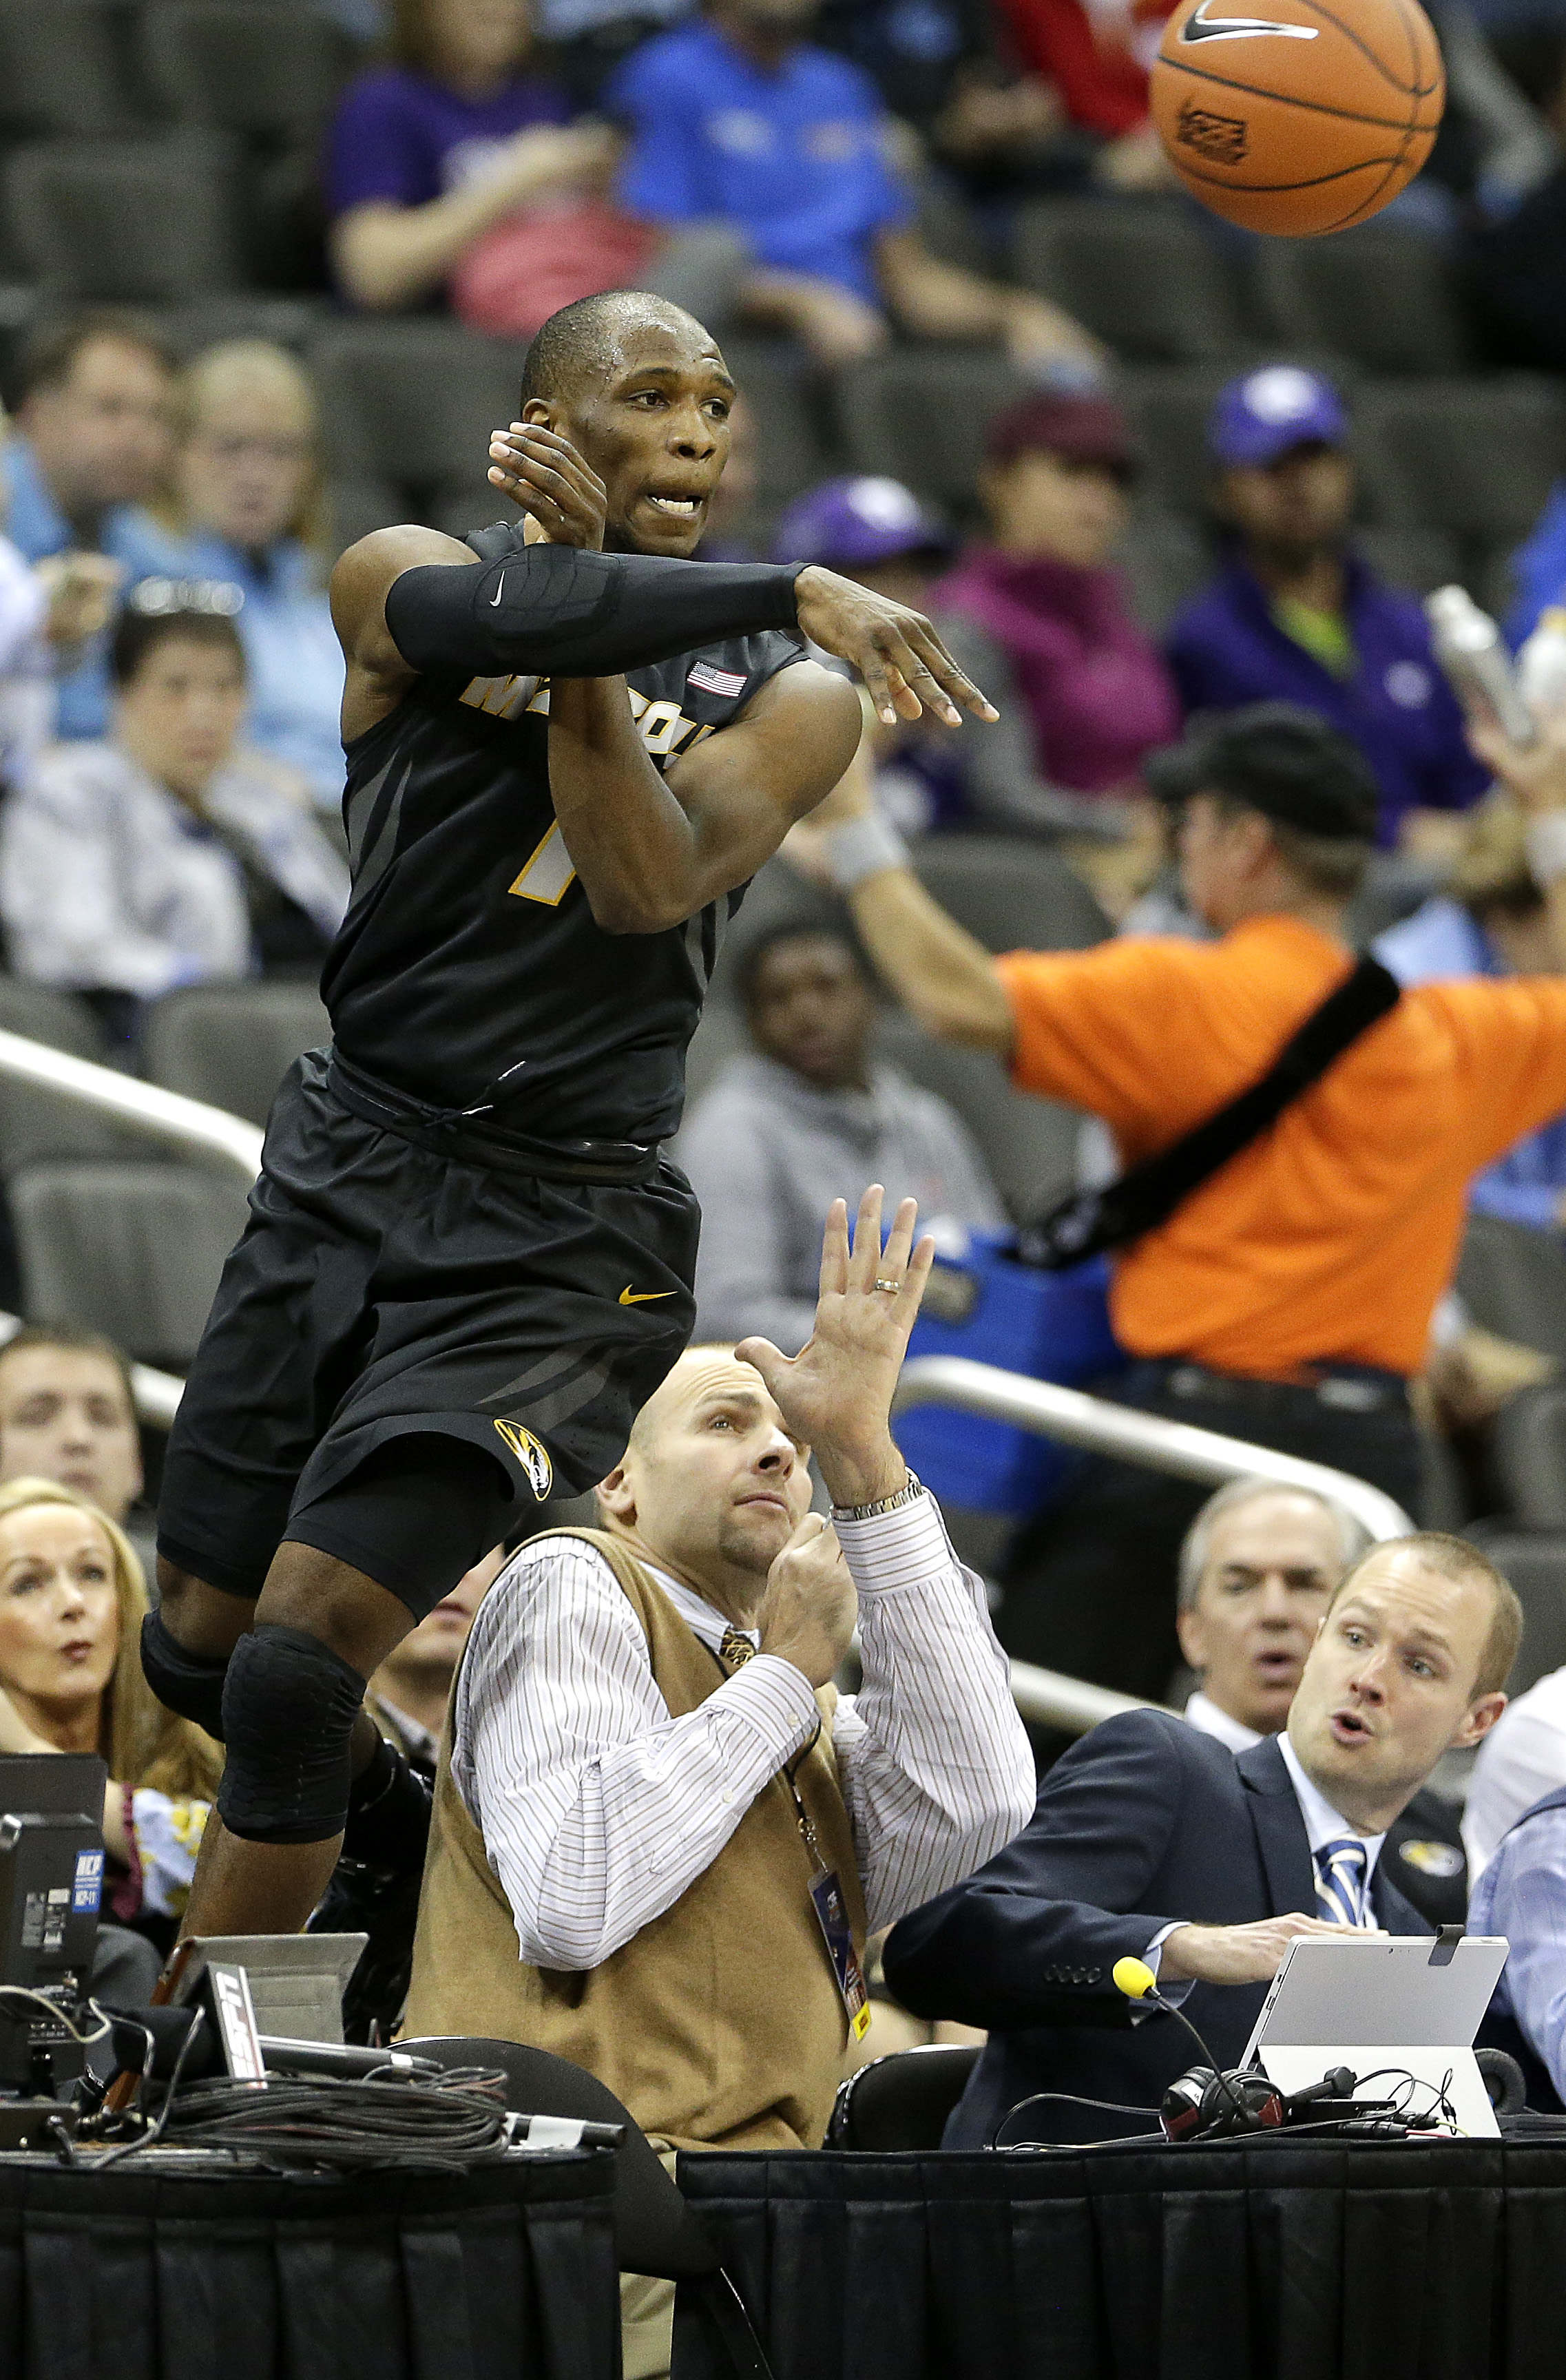 Missouri's Terrence Phillips leaps over the scorer's table as he attempts to keep a ball in bounds during the first half of an NCAA college basketball against Kansas State game Monday, Nov. 23, 2015 in Kansas City, Mo. (AP Photo/Charlie Riedel)